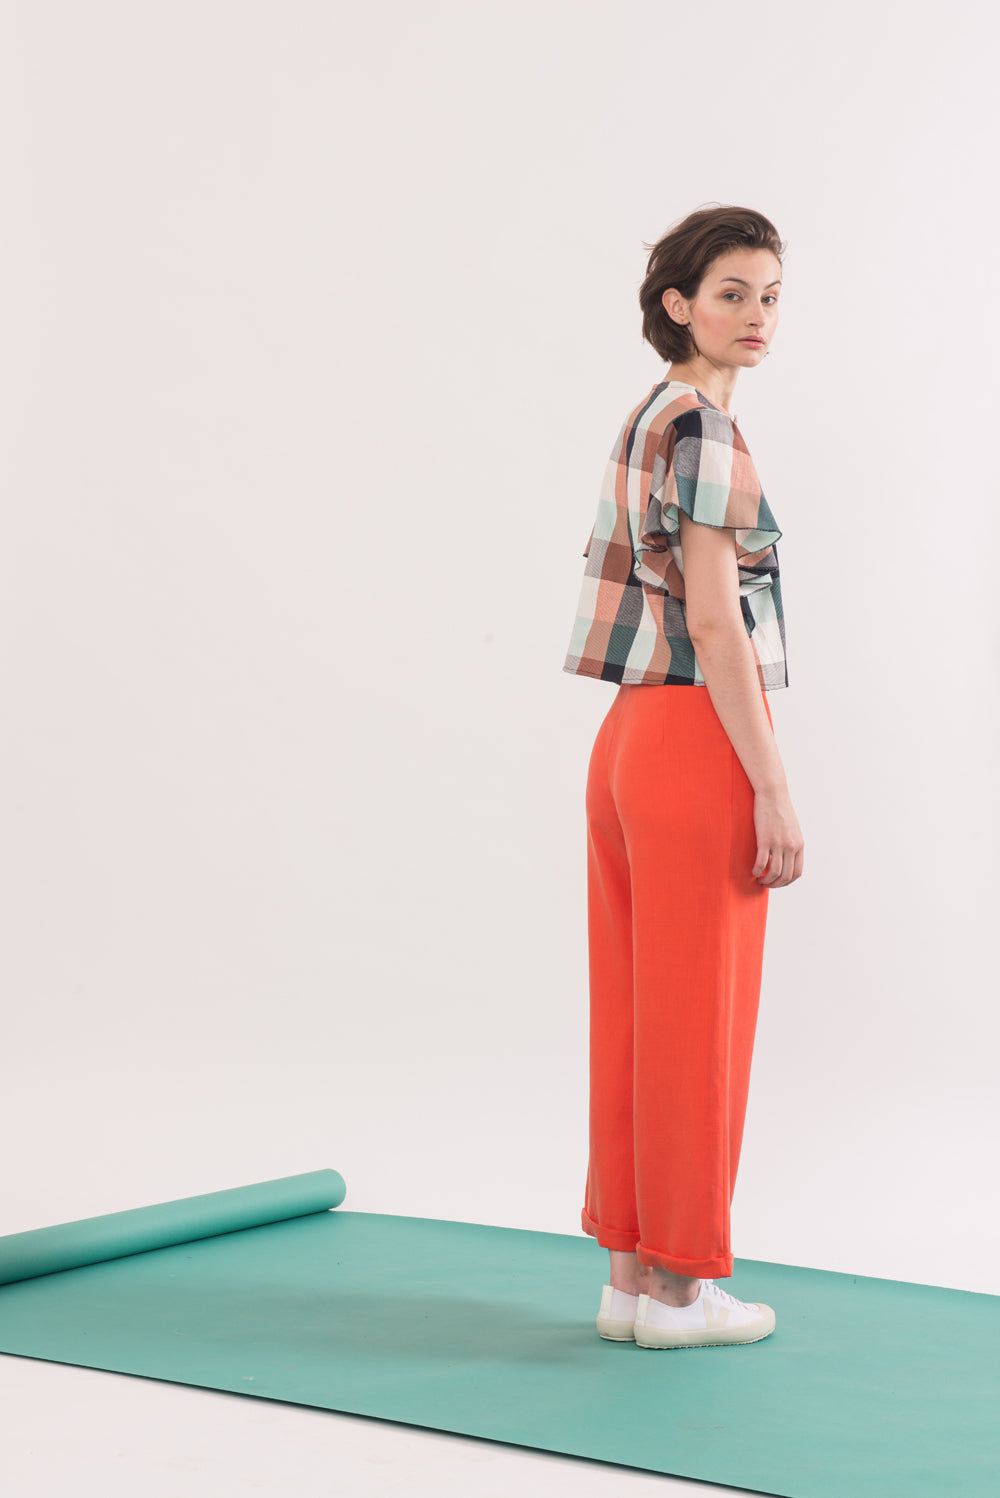 Agnes Trouser by Jennifer Glasgow, Carrot, side view, long fly, flared leg, organic cotton twill, eco fabric, OEKO-TEX Standard 100, sizes XS to XL, made in Montreal Canada